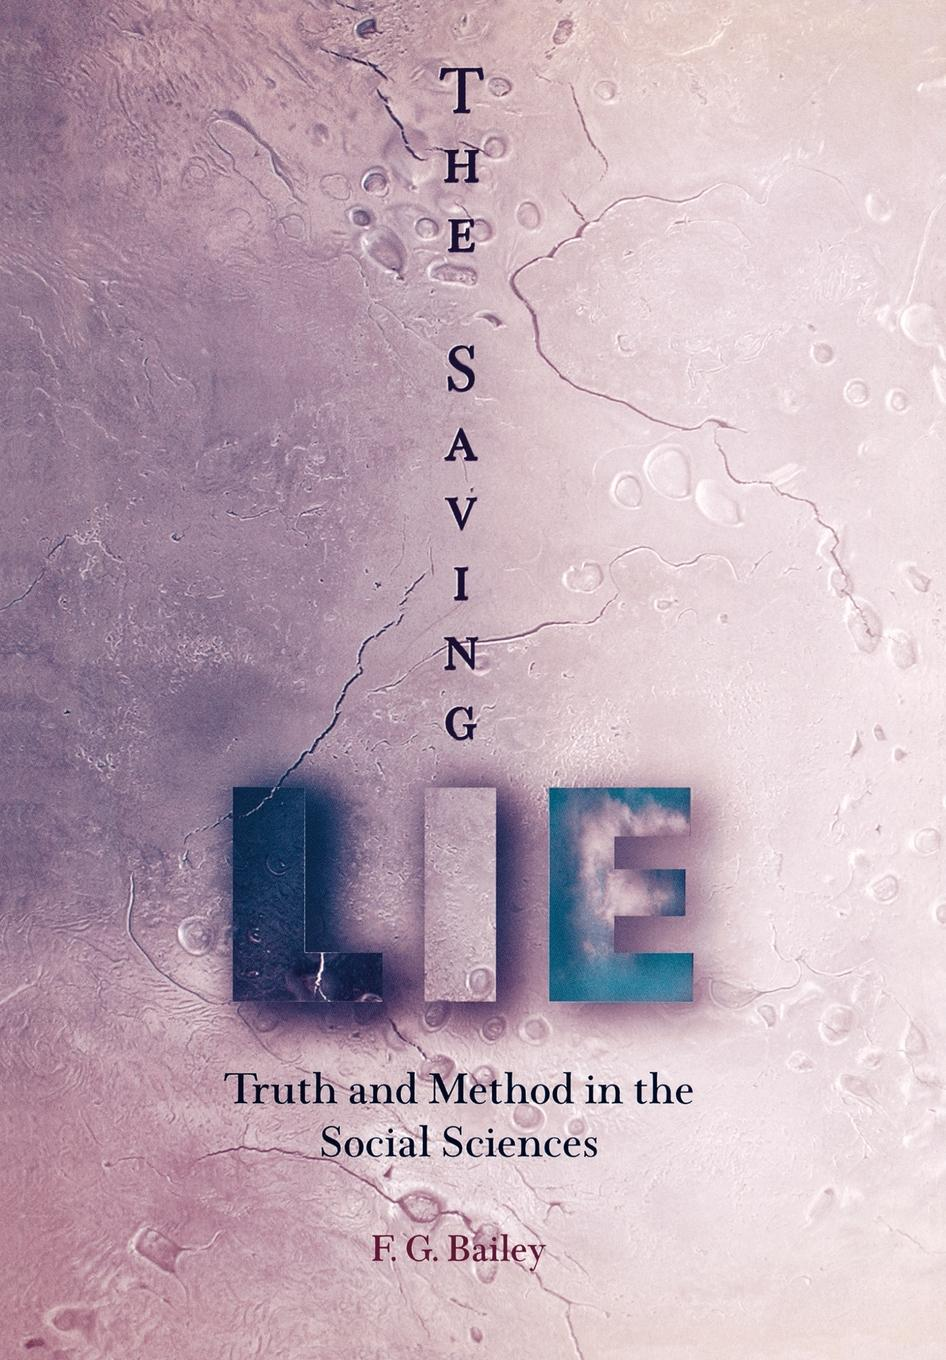 The Saving Lie Truth and Method in the Social Sciences